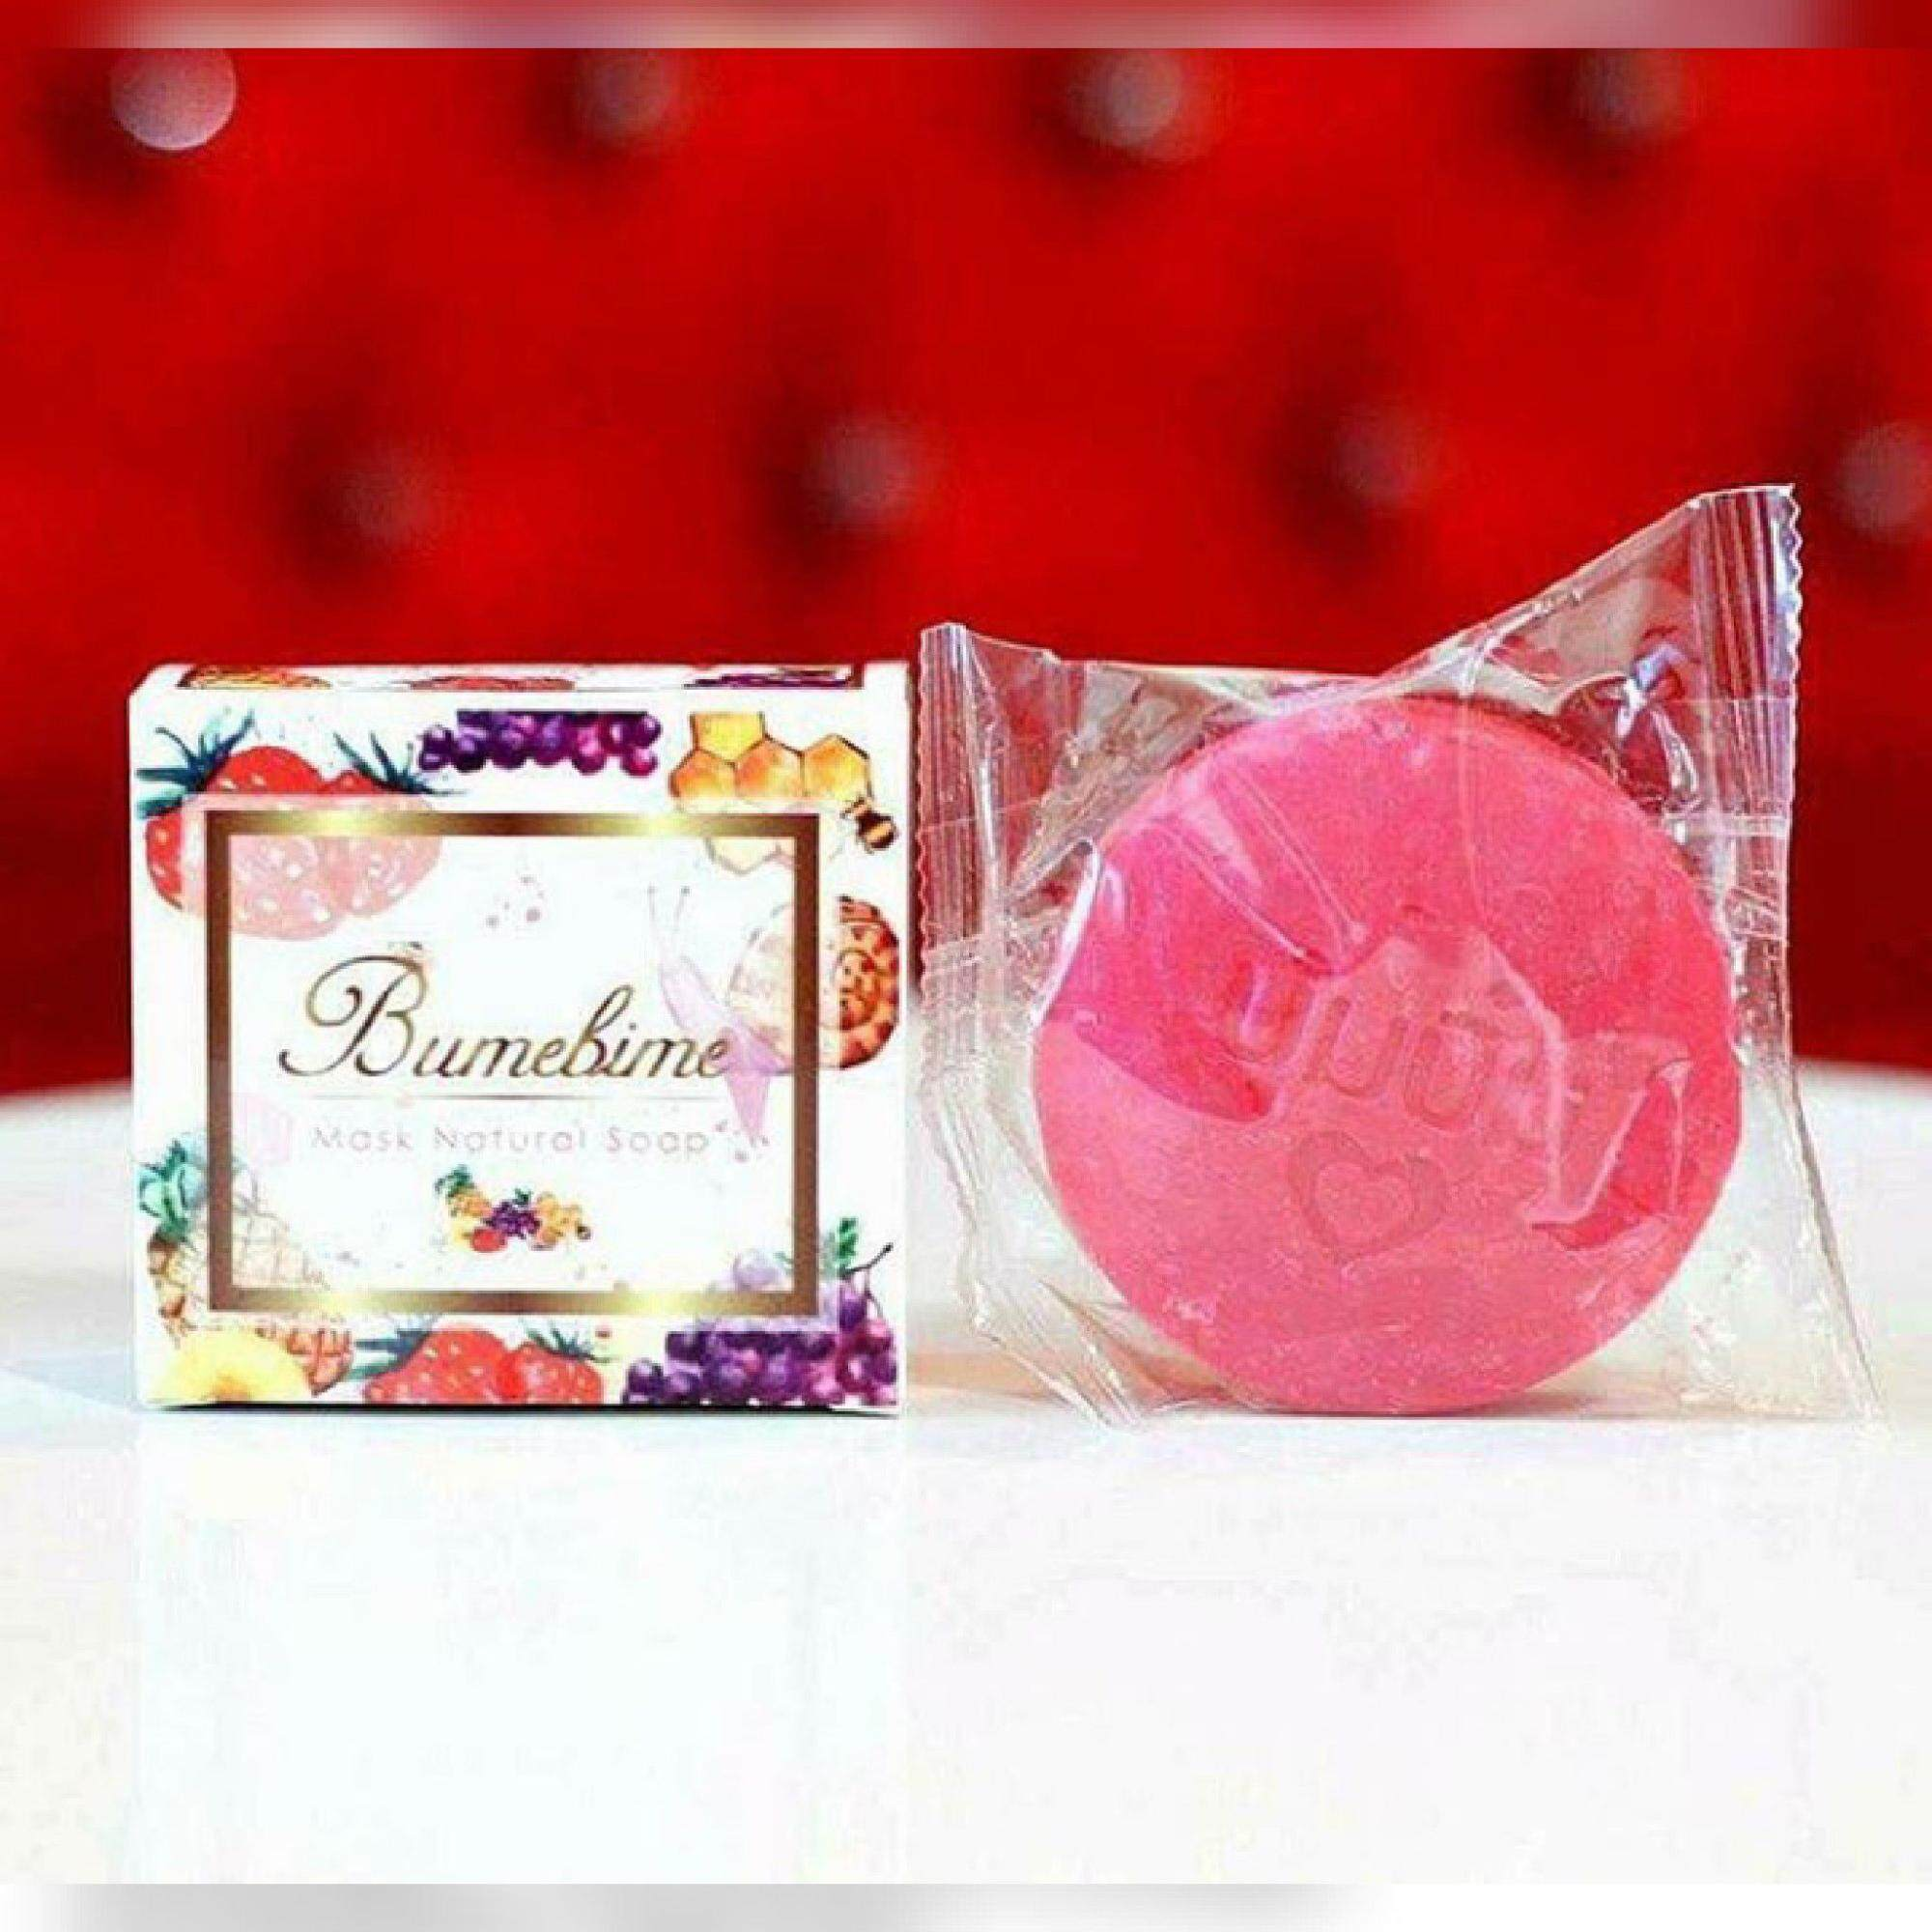 Bume Bime whitening soap